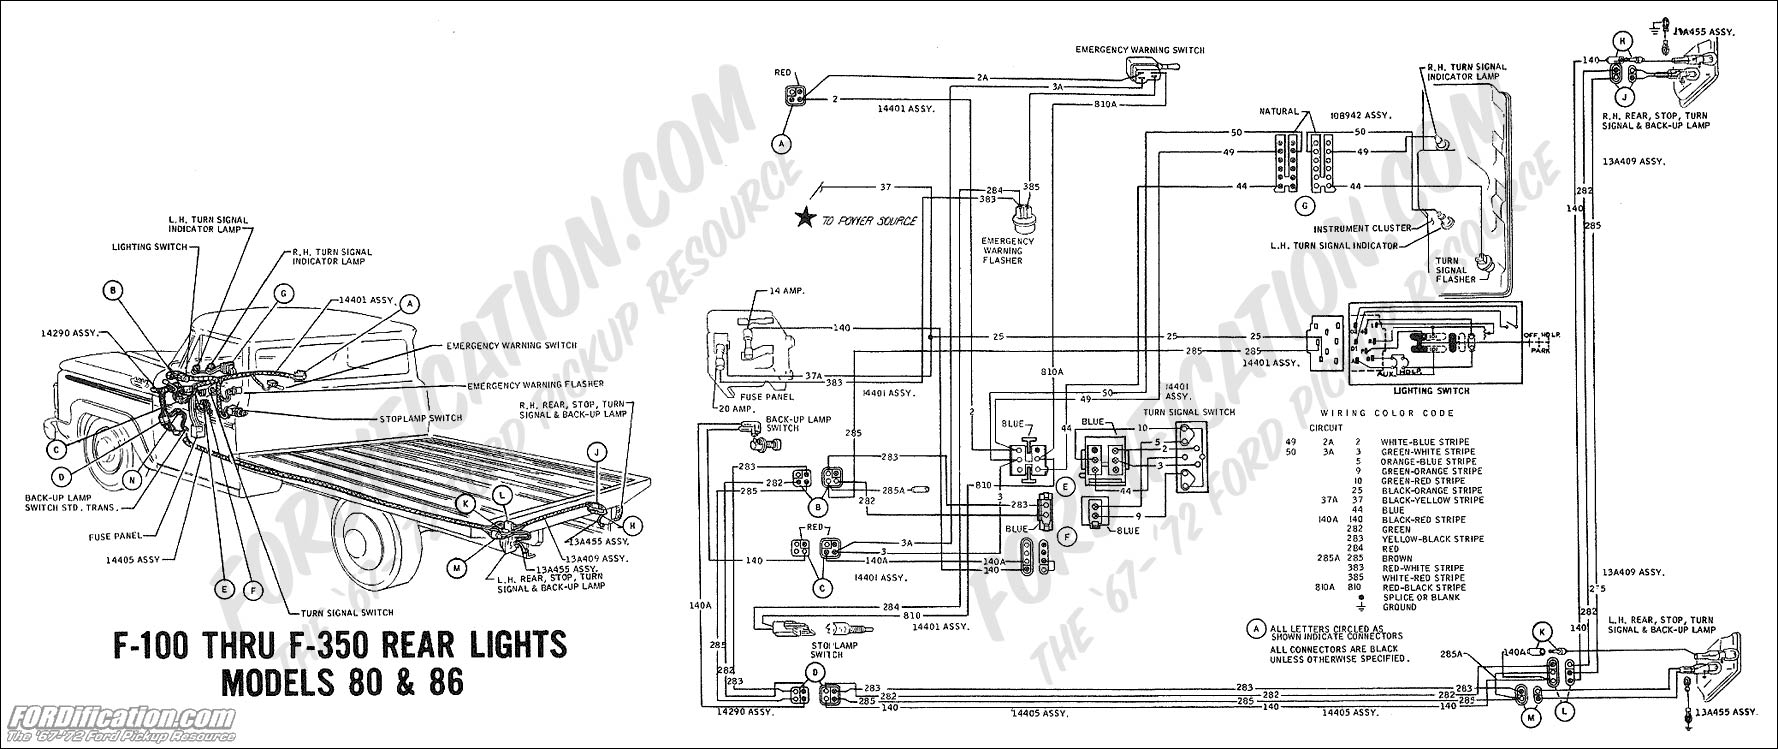 Ford F700 Truck Wiring Diagrams Diagram F500 1988 Simple Diagram1988 1989